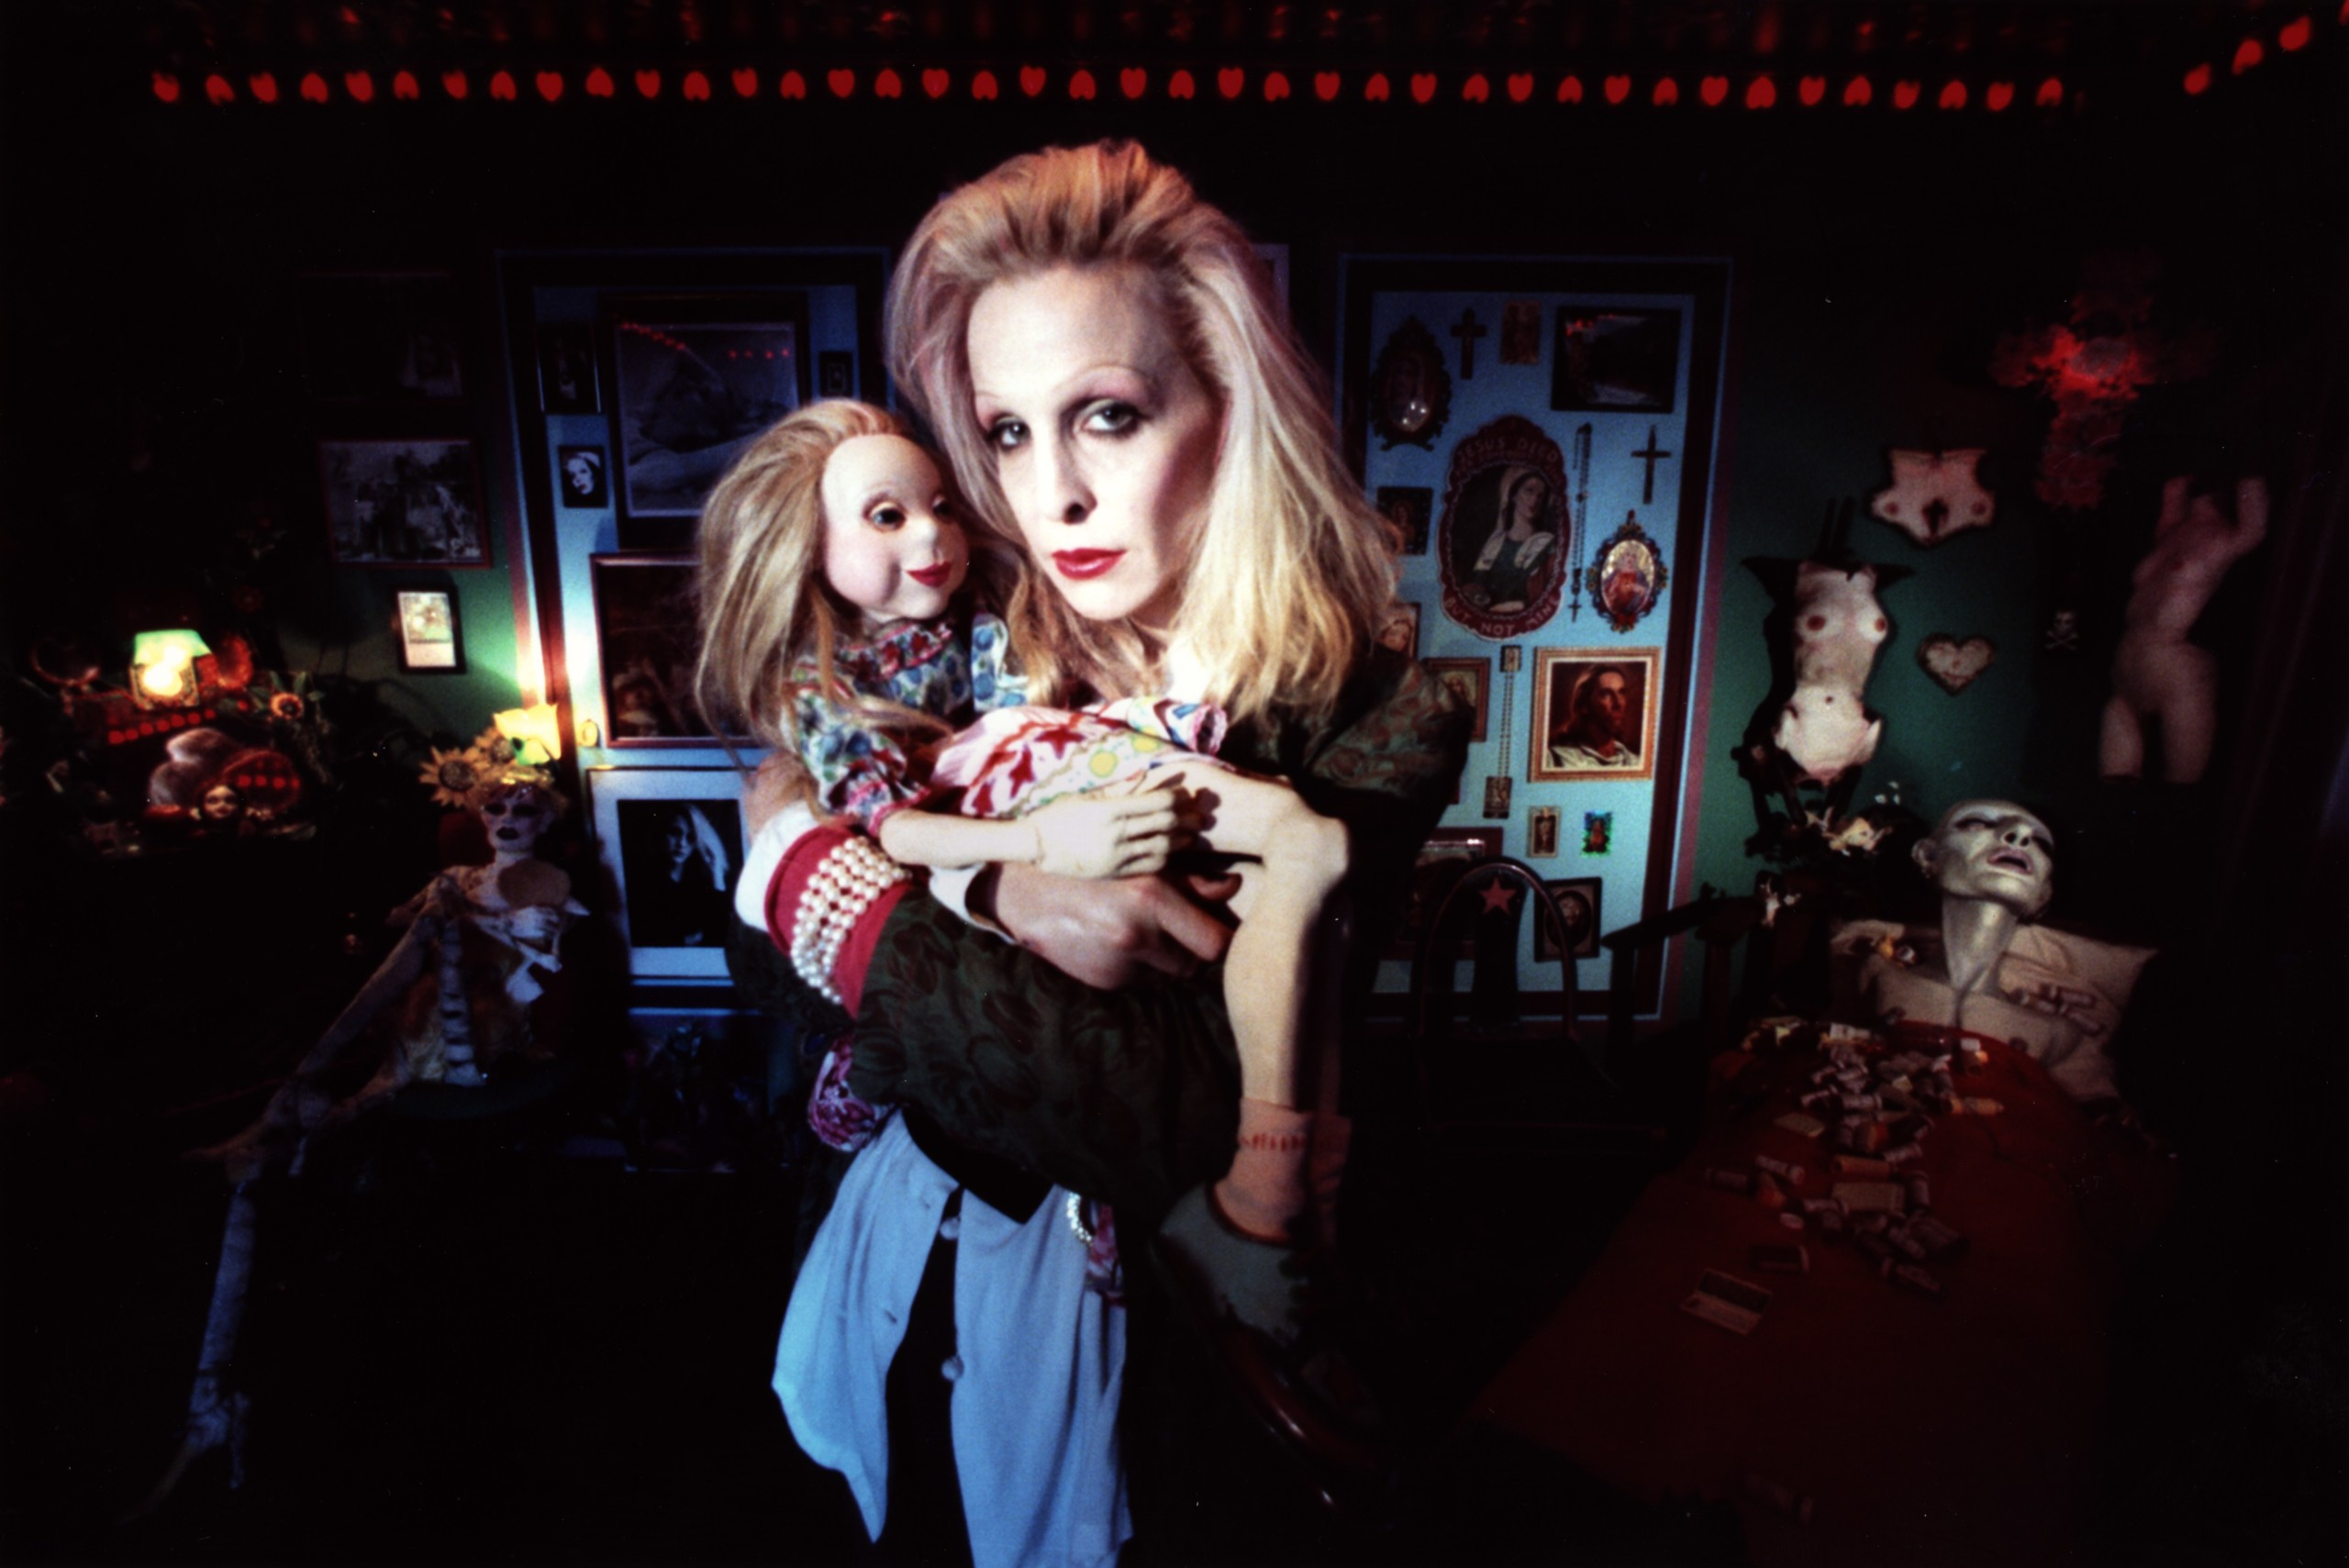 photo of woman with puppet in dark setting